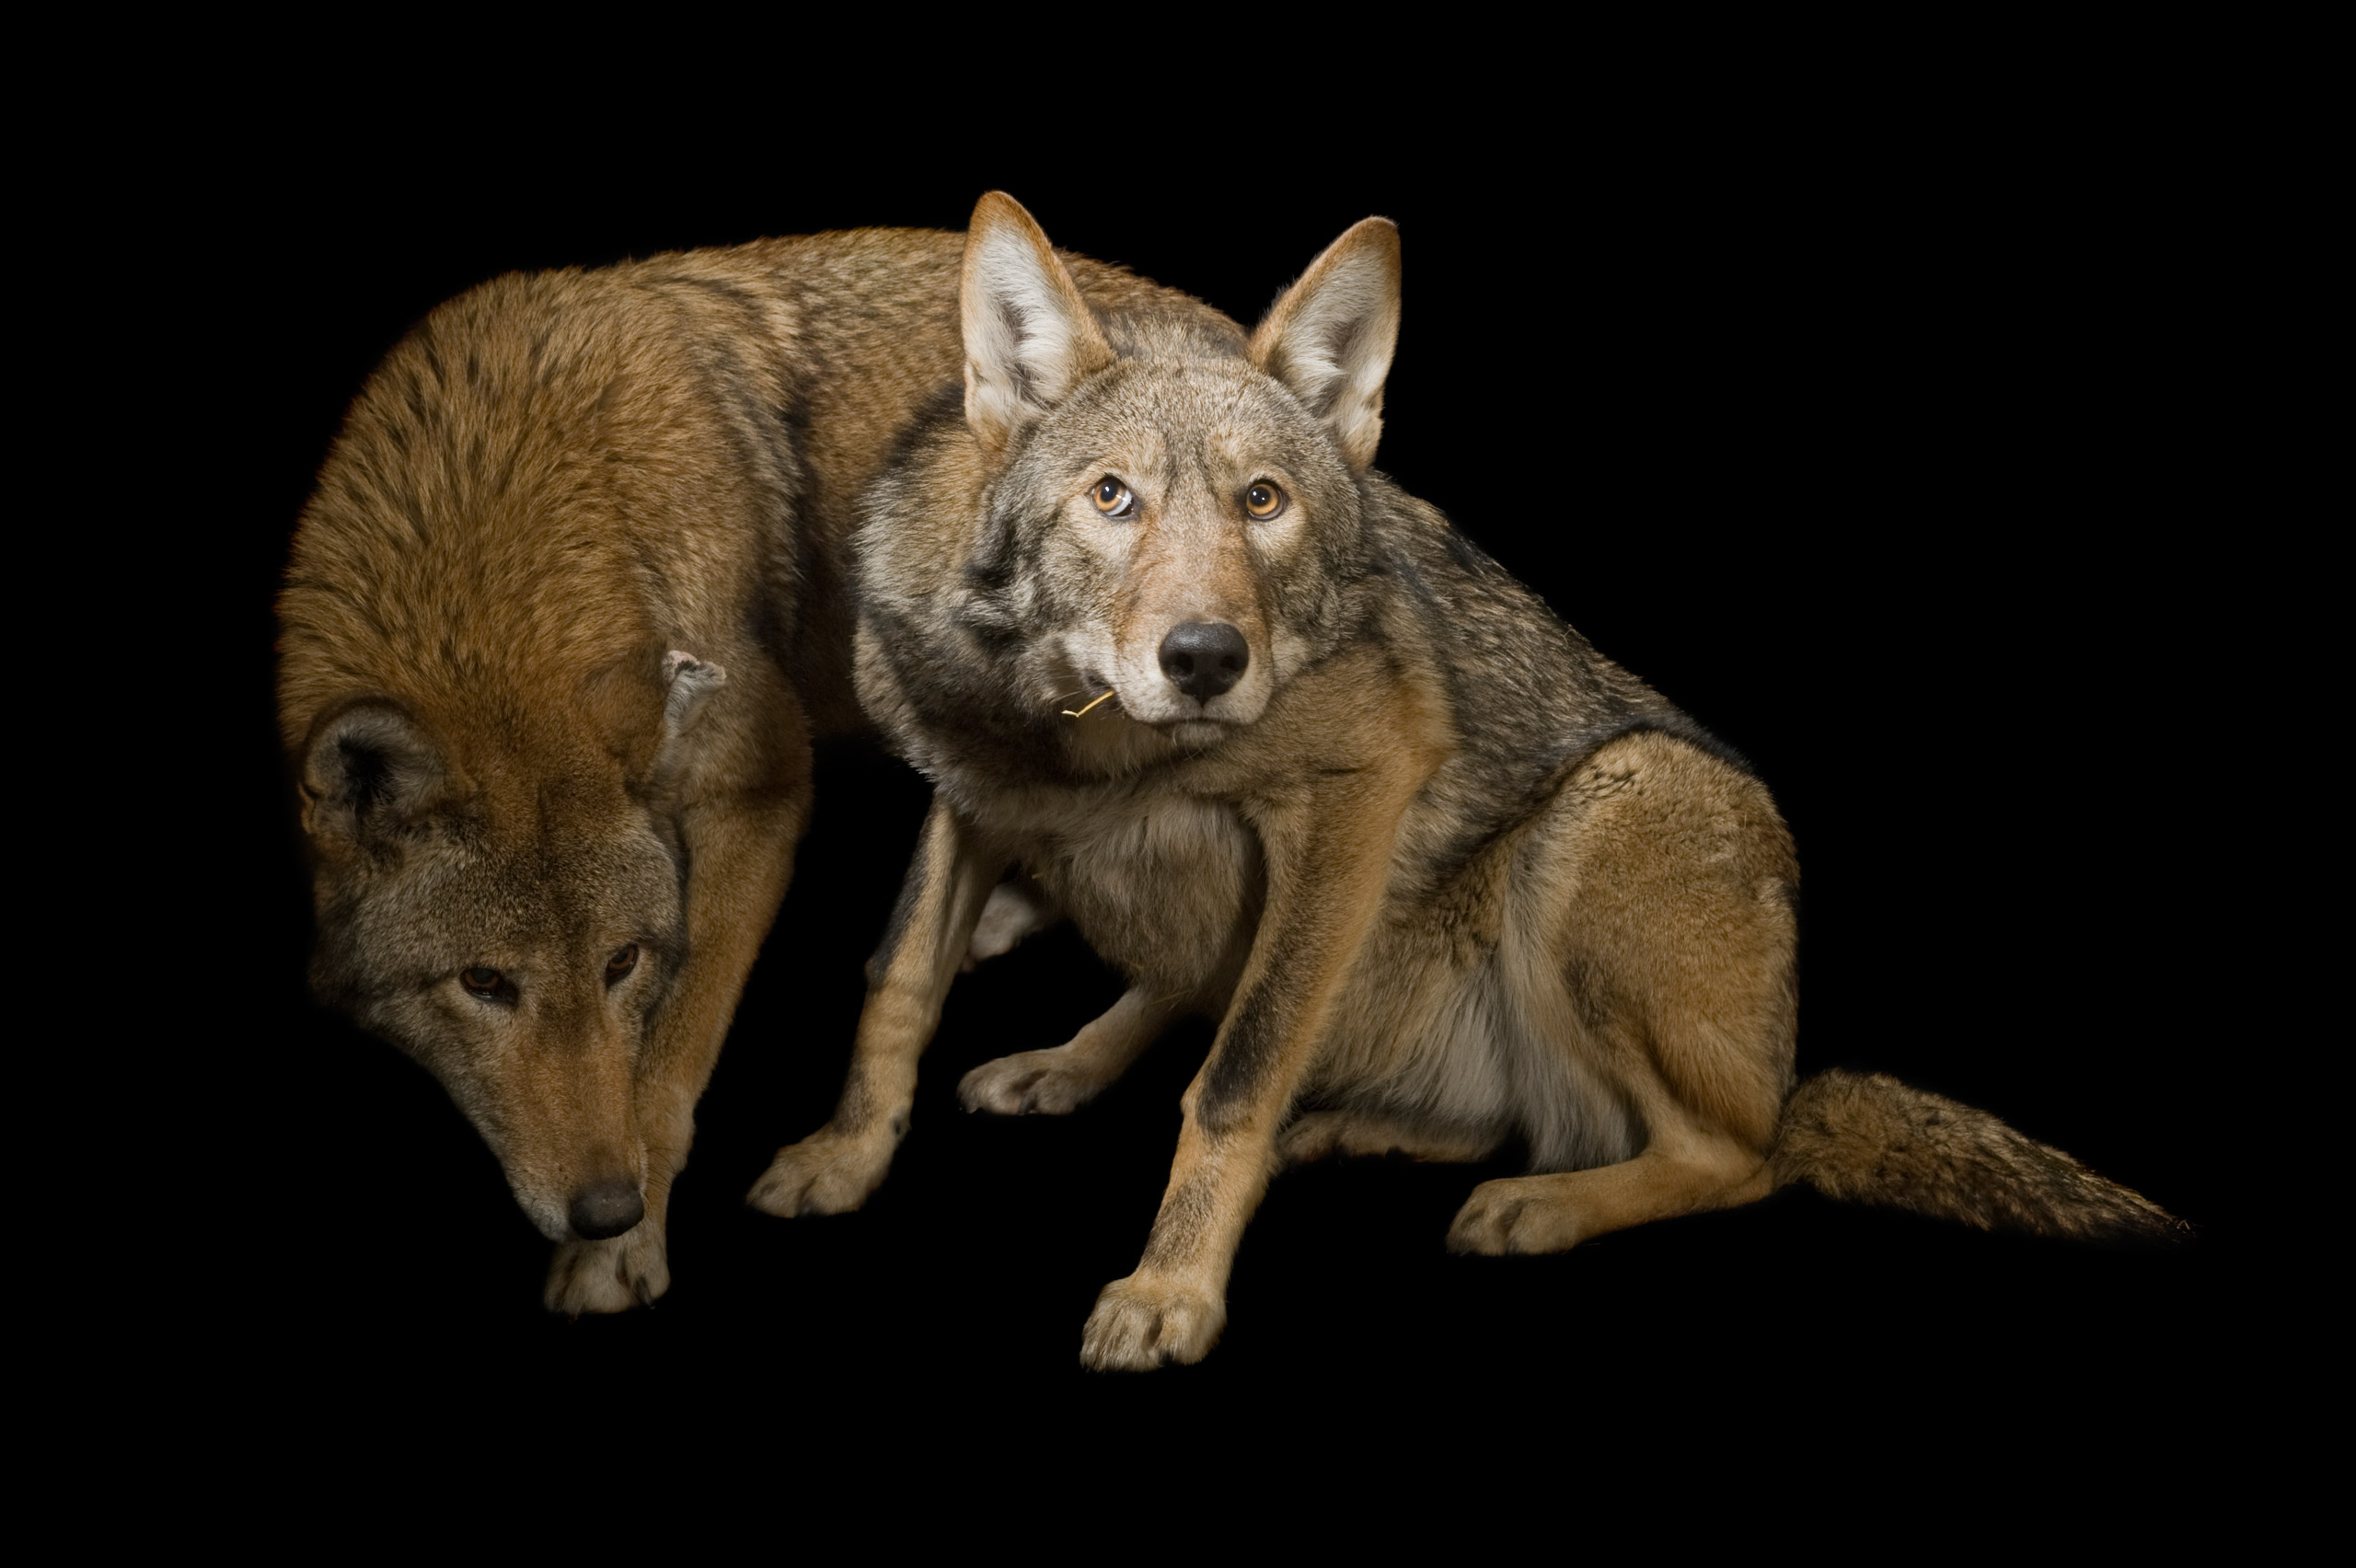 """Red wolves, <i>Canis rufus.</i>Status: Endangered except, as of 1986, a non-essential experimental population in North Carolina and Tennessee. (""""Experimental"""" populations are those that have been reintroduced within the species' historical range but outside the regions where it is currently found. Experimental populations can be deemed either essential or inessential to the species' survival.)"""